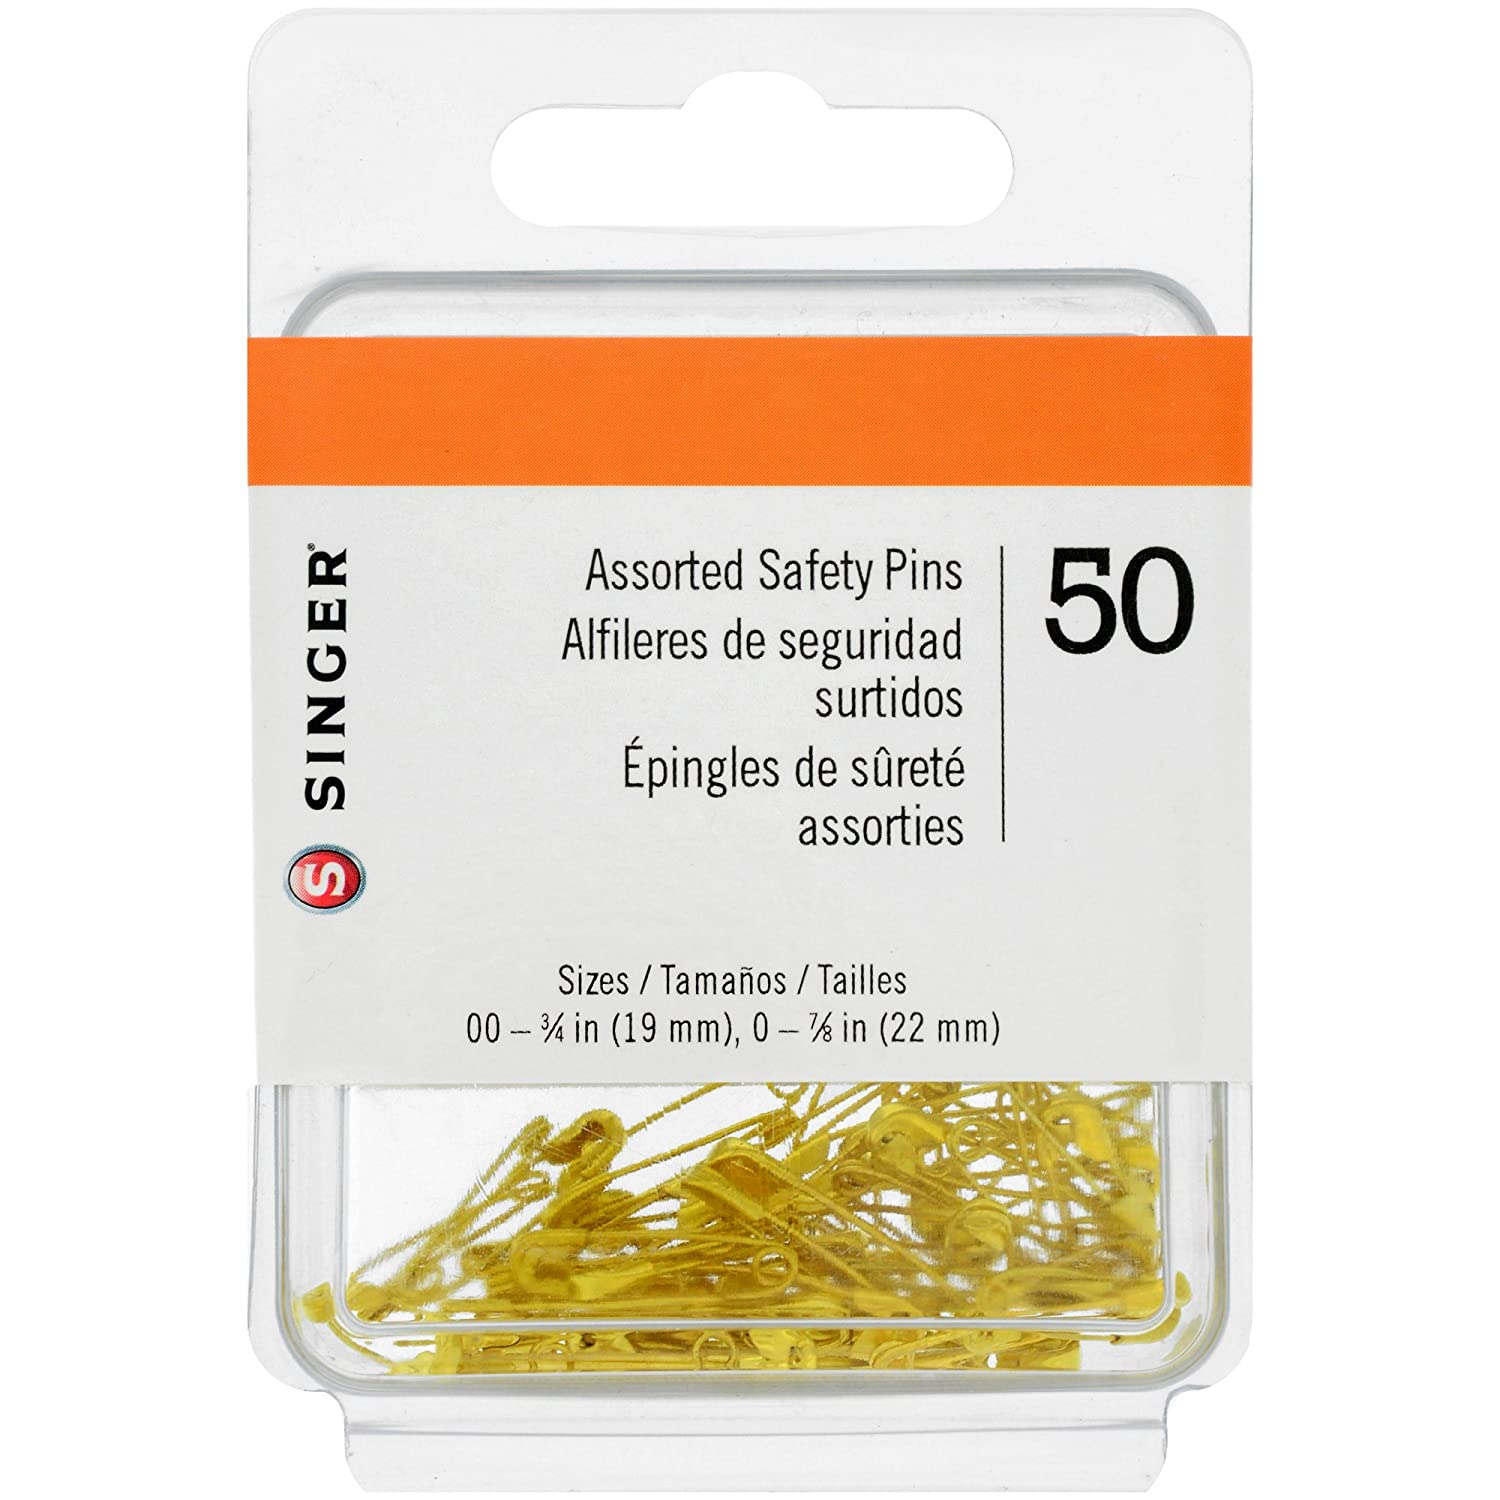 SINGER 00224 Assorted Safety Pins, Multisize, Gilt Plated, 50-Count tifqhi2363497